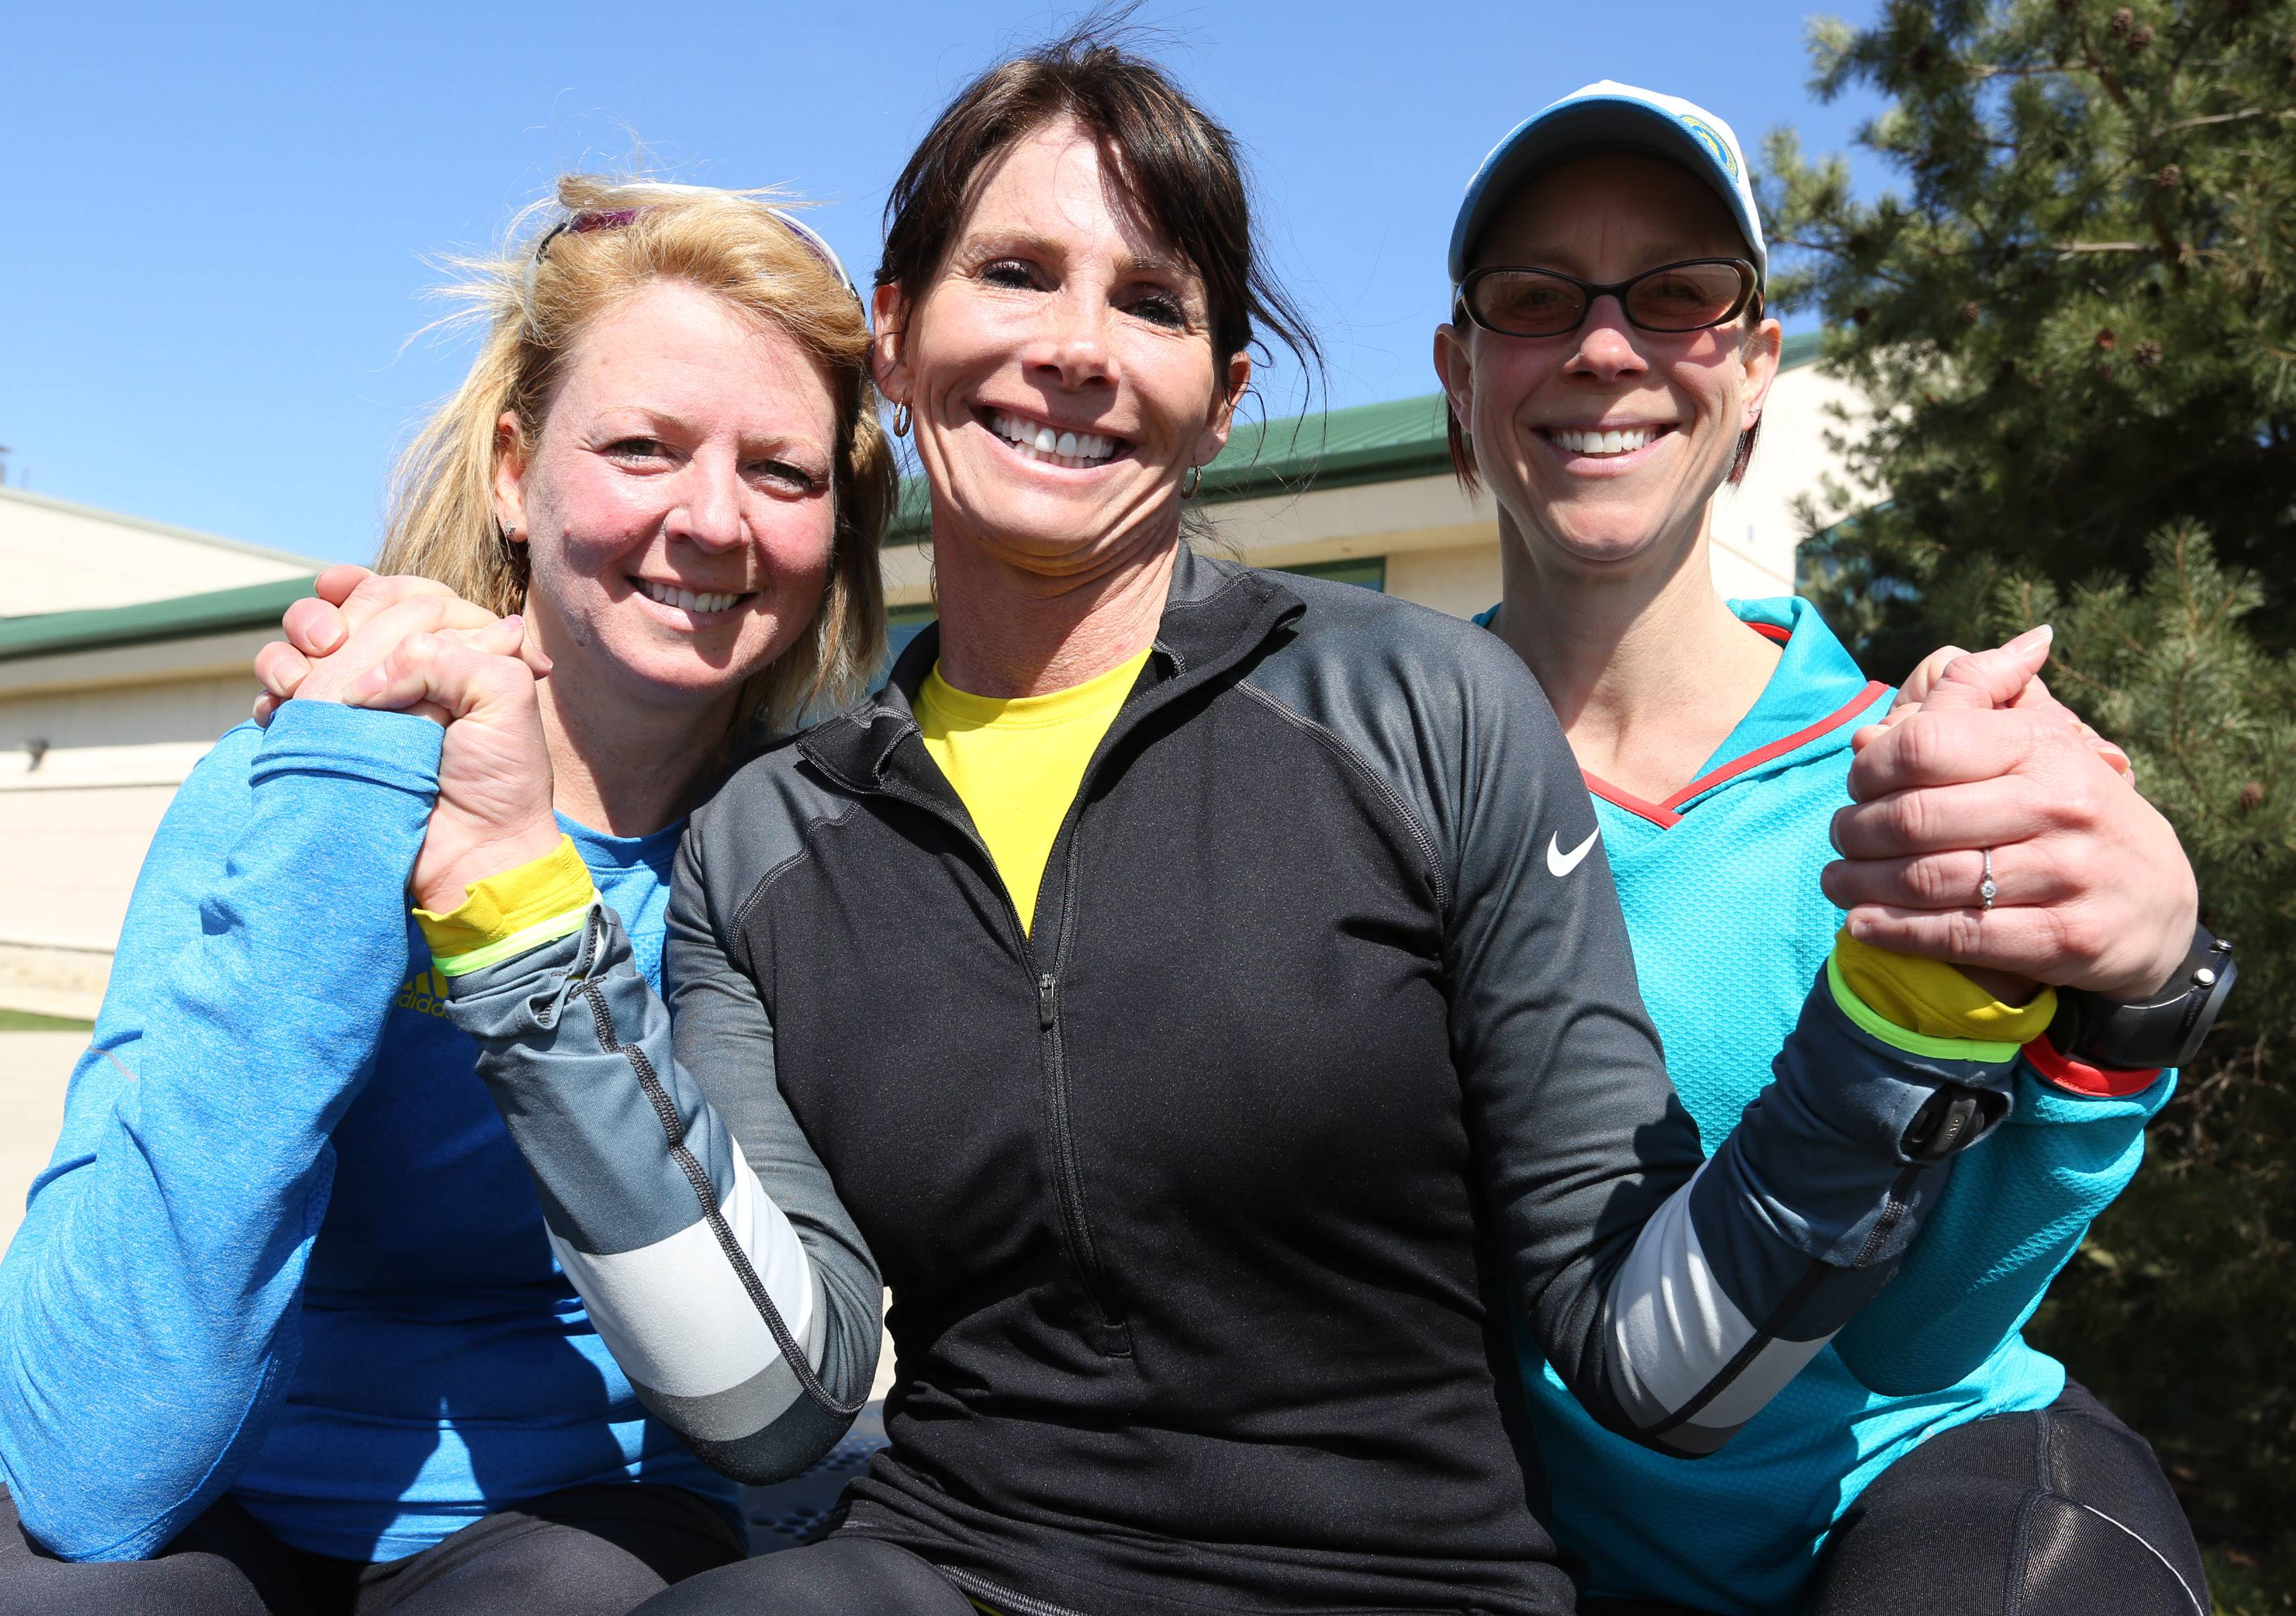 Brenda Zeck of Third Lake, from left, Sue Balthazor of Gurnee and Lisa Strong of Grayslake take a training run near Gurnee. All three ran the Boston Marathon last year, and Zeck and Balthazor will return to run it Monday.